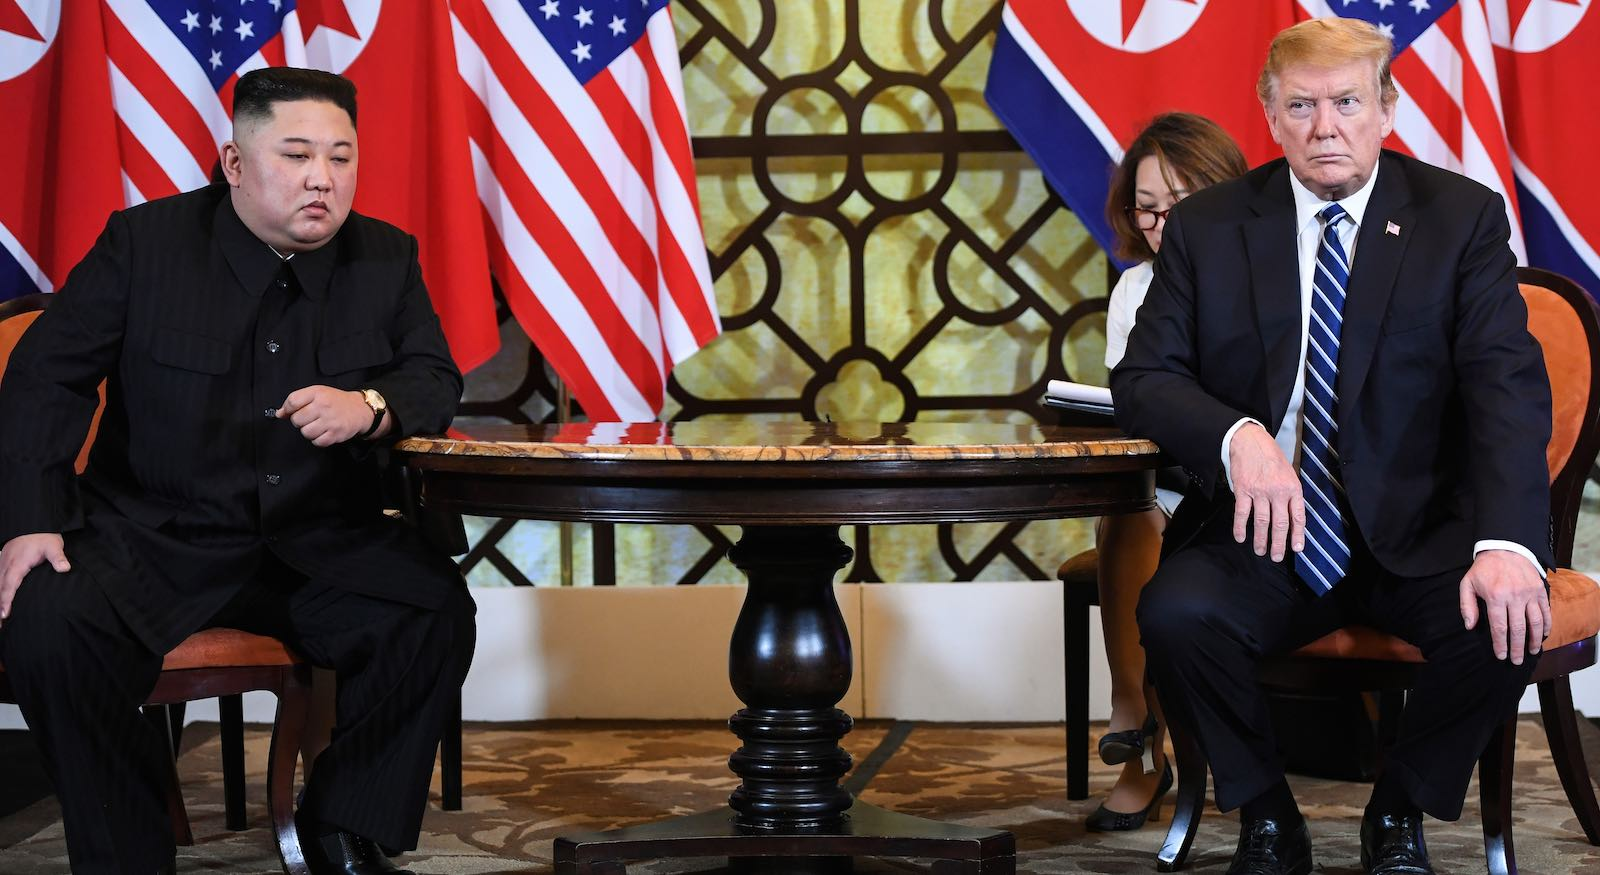 The Hanoi summit ended with a whimper, not the planed grand signing ceremony (Photo: Saul Loeb via Getty)